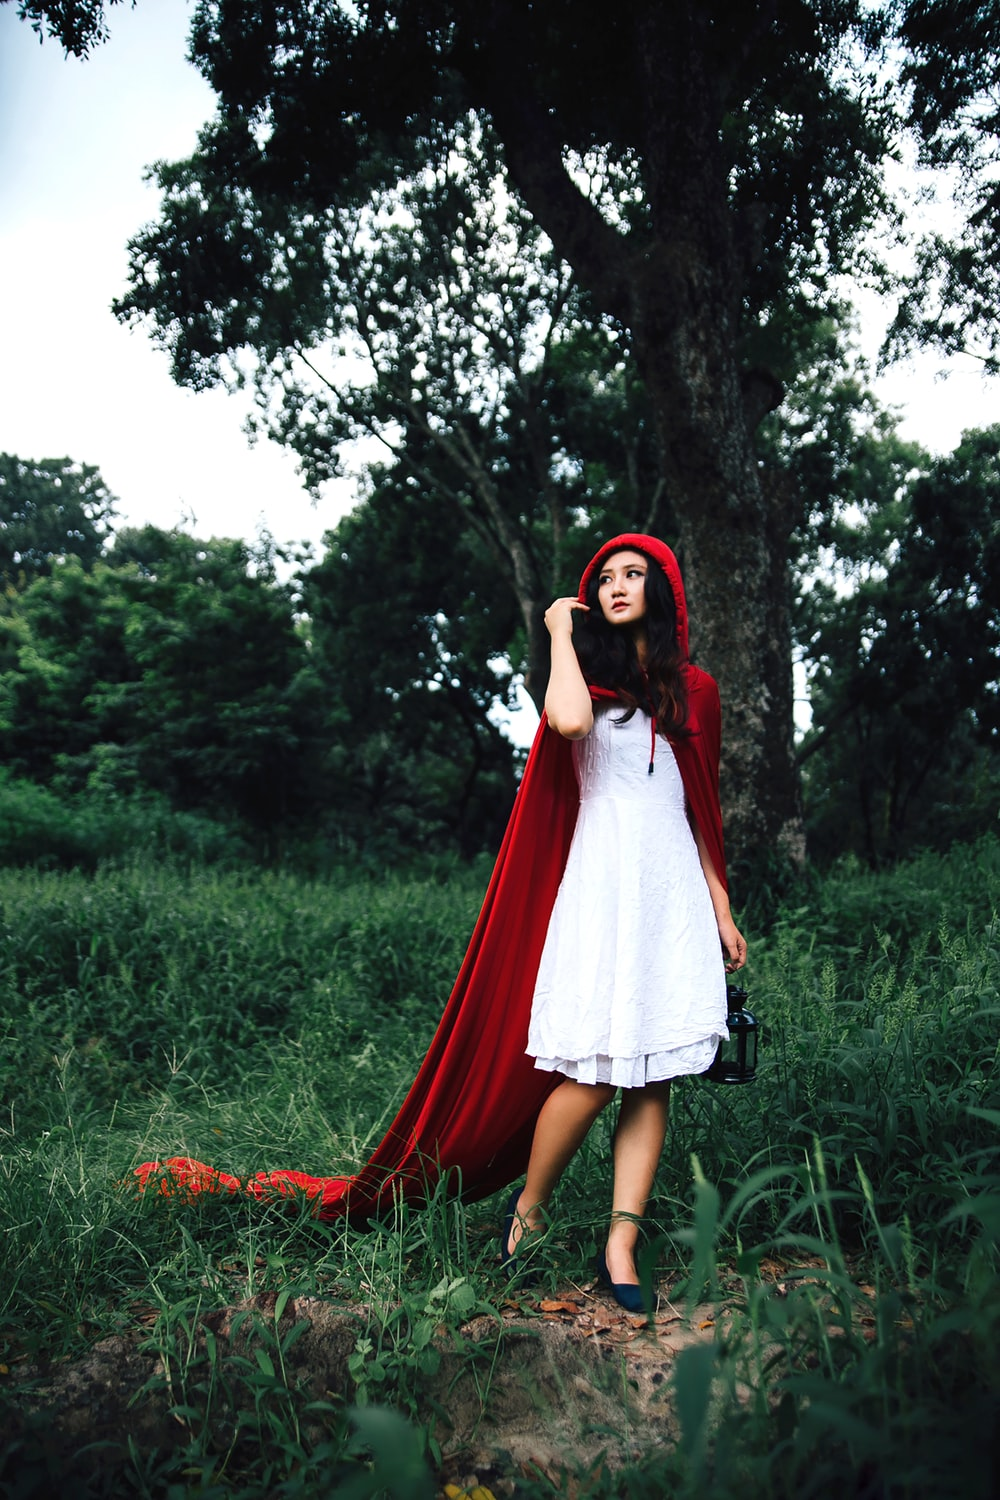 woman cosplaying little riding hood near tree